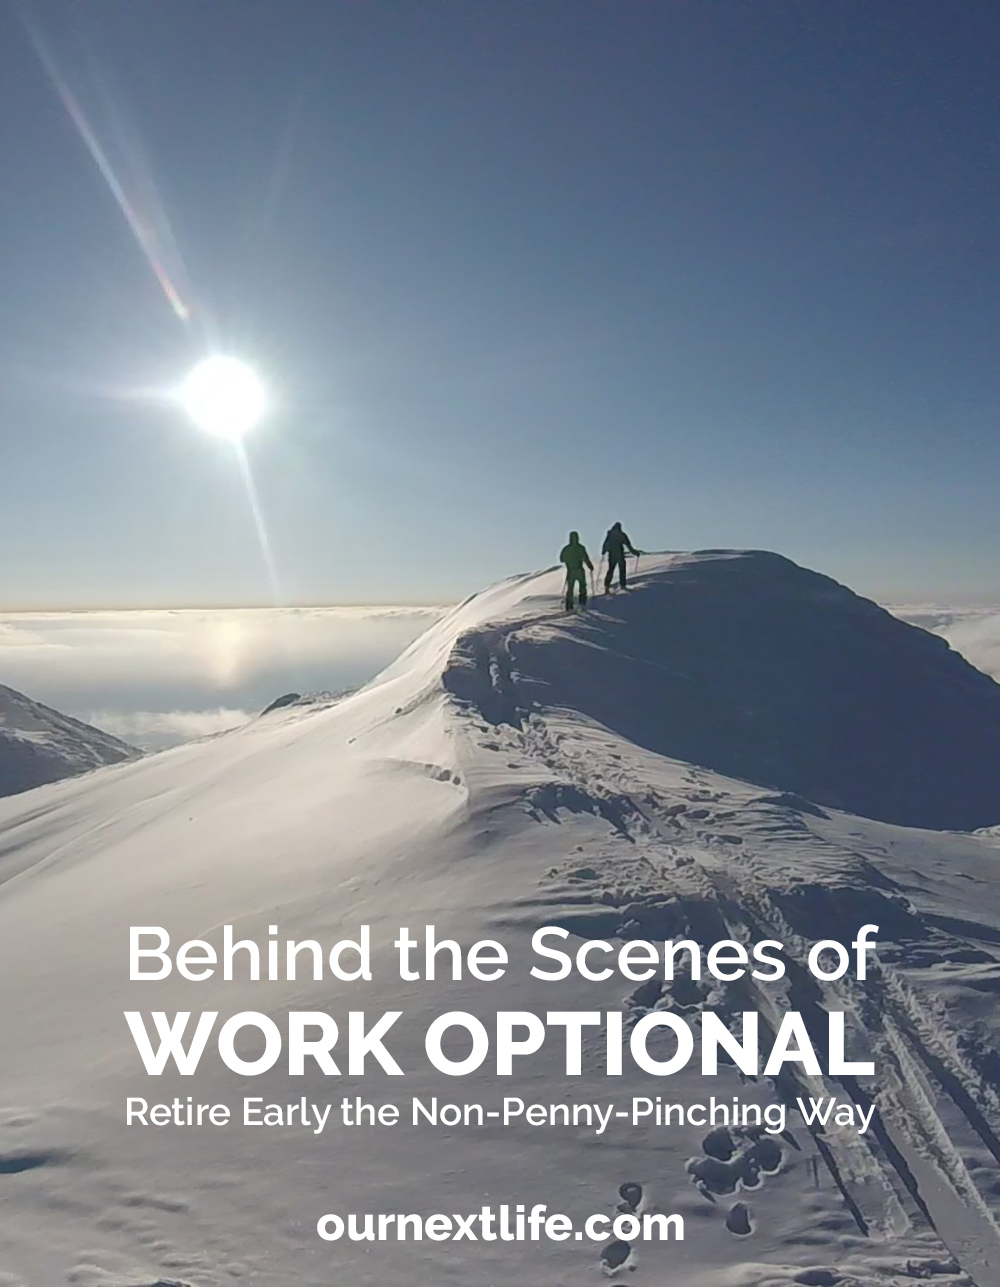 Behind the Scenes of WORK OPTIONAL: Retire Early the Non